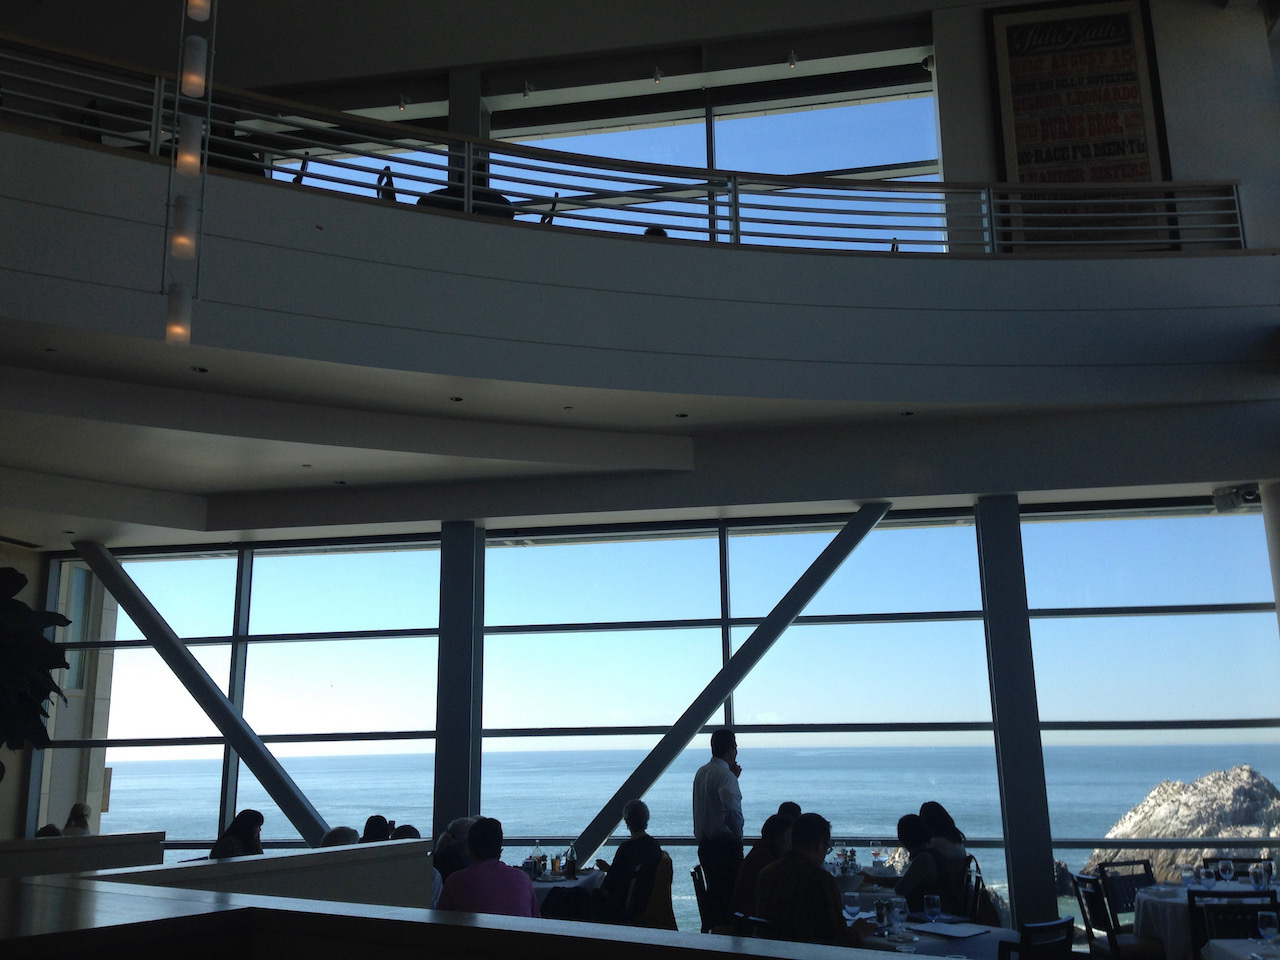 Sutro's, the fancier restaurant on the Cliff House's lower level. The balcony bar is visible at the top of the picture.